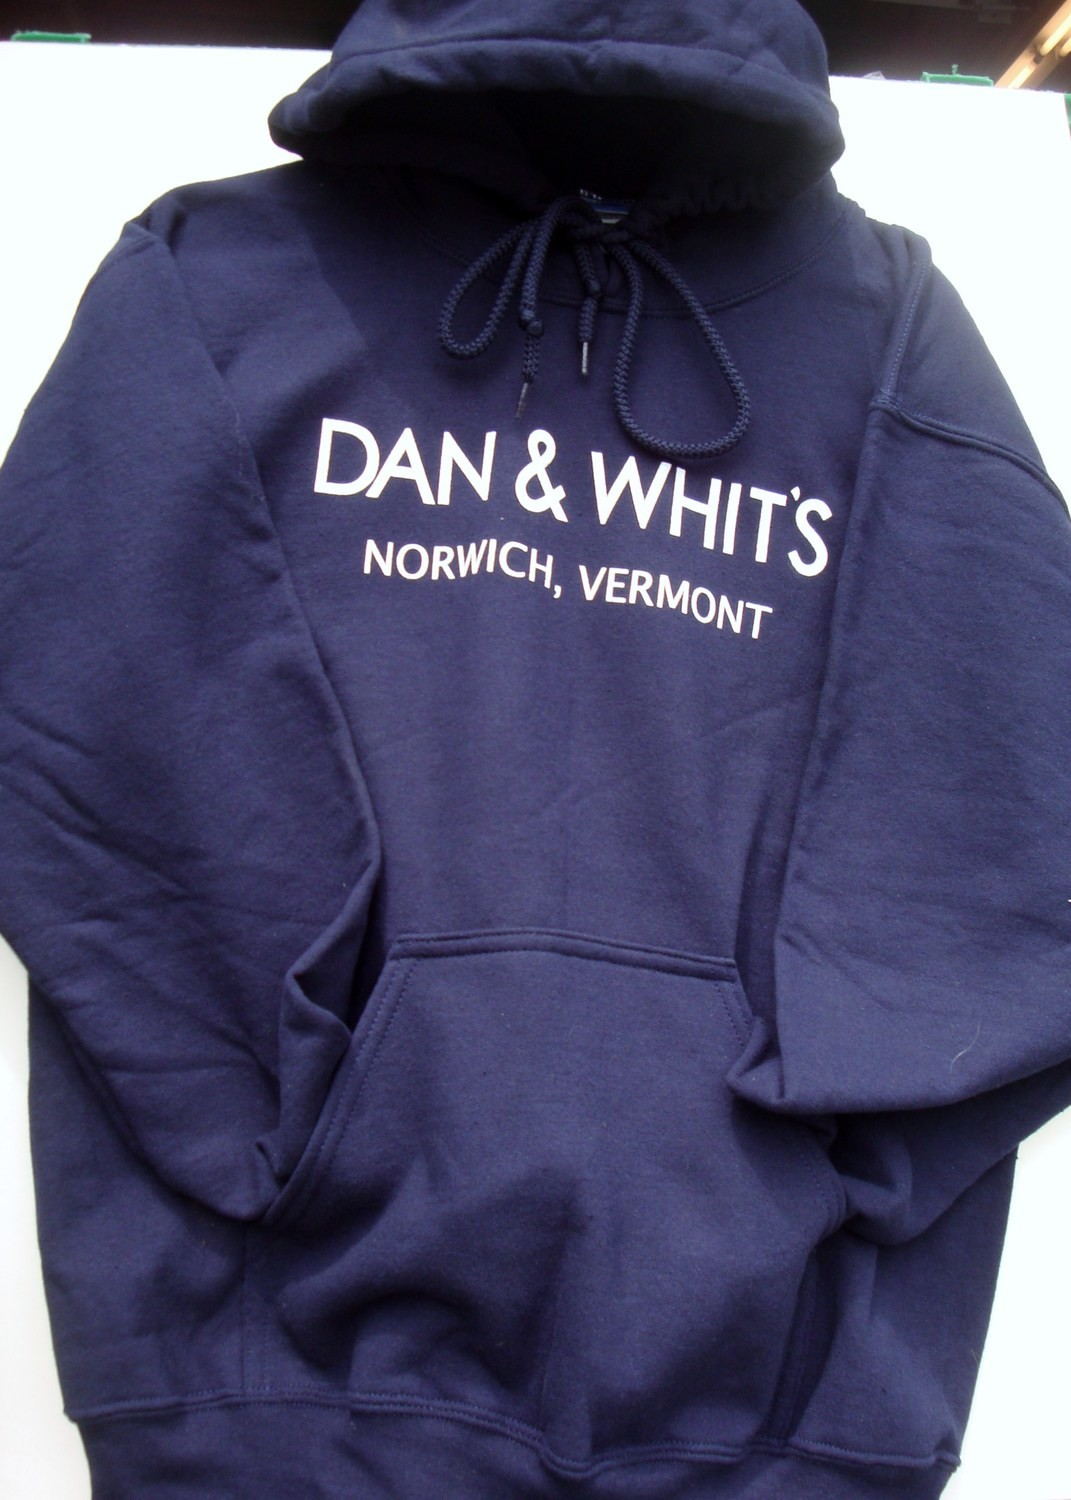 Dan & Whit's Sweat Shirt, youth